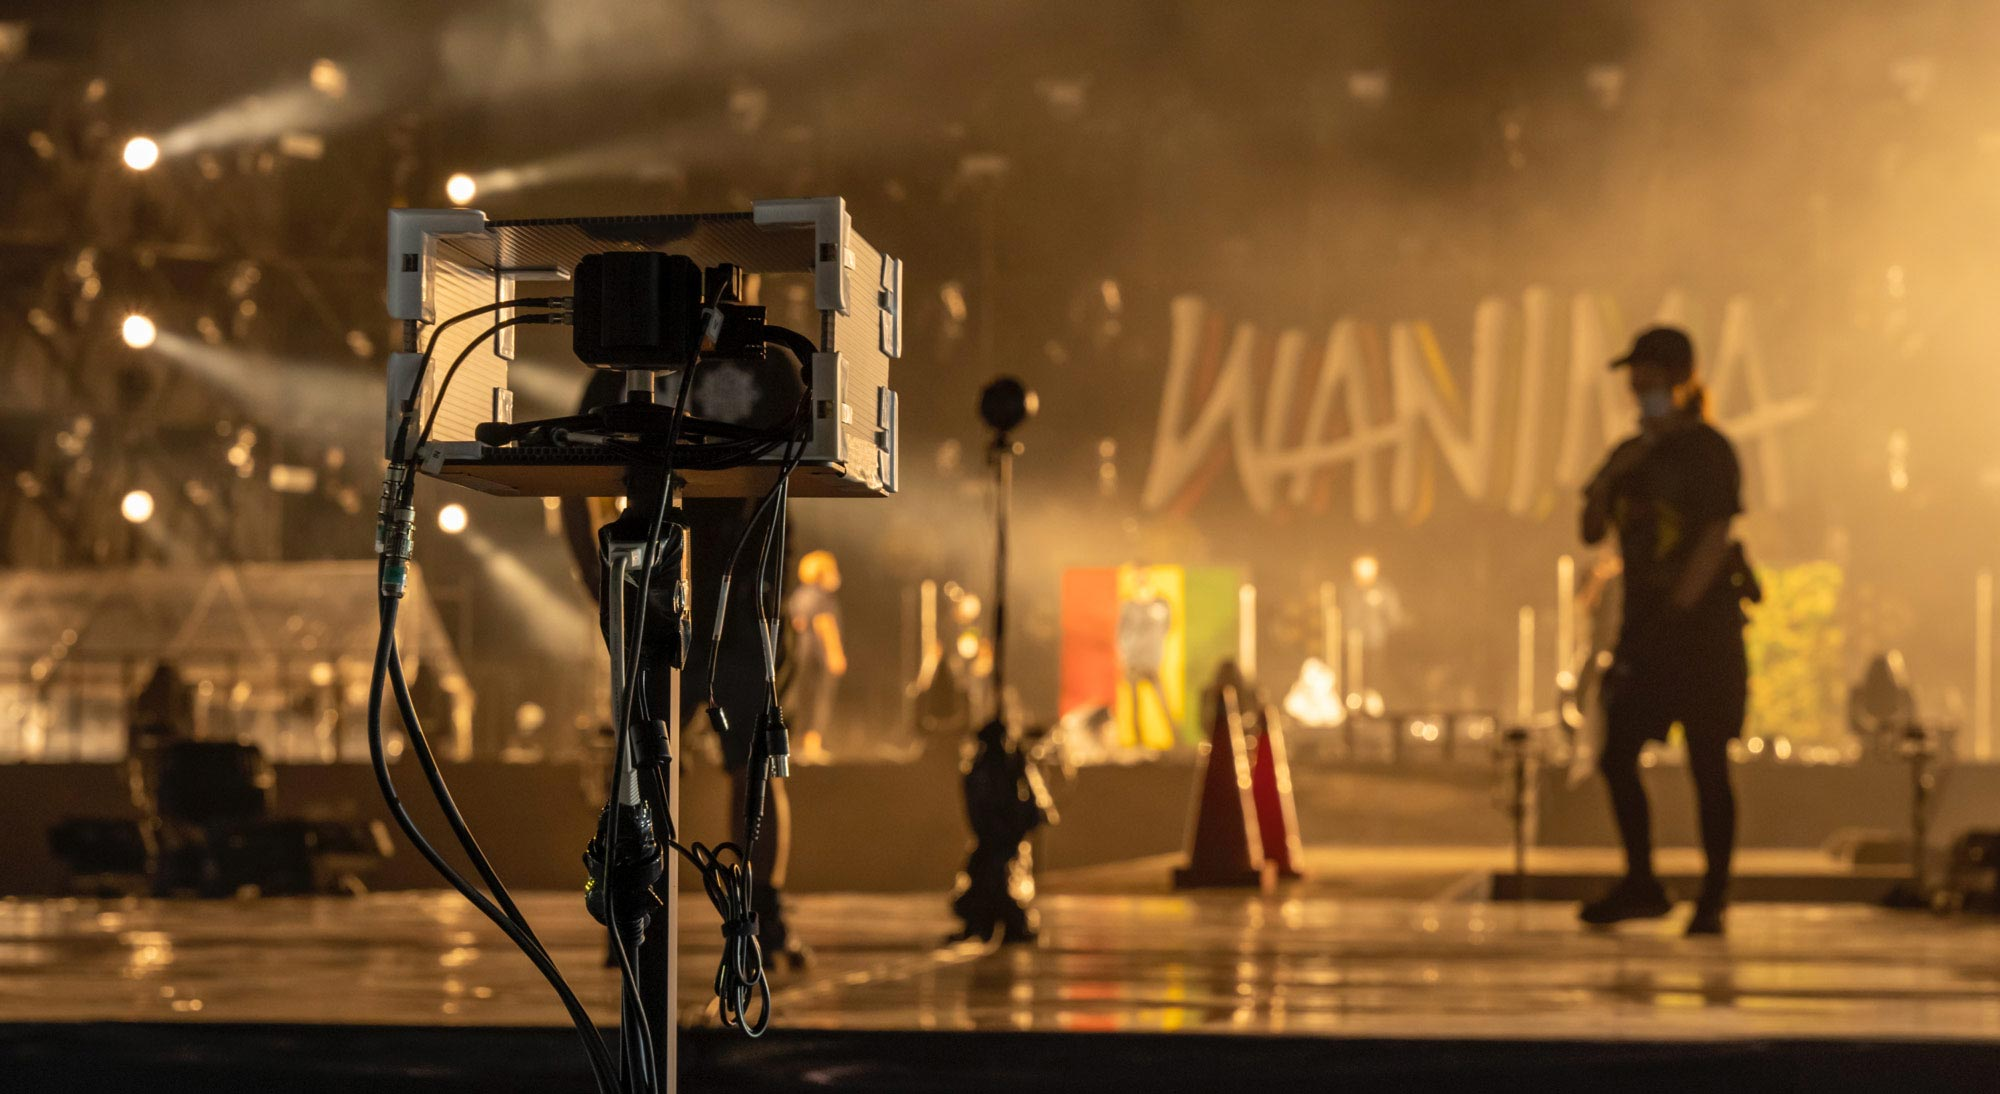 24 Blackmagic cameras used for a streamed concert by Jose Antunes - ProVideo Coalition